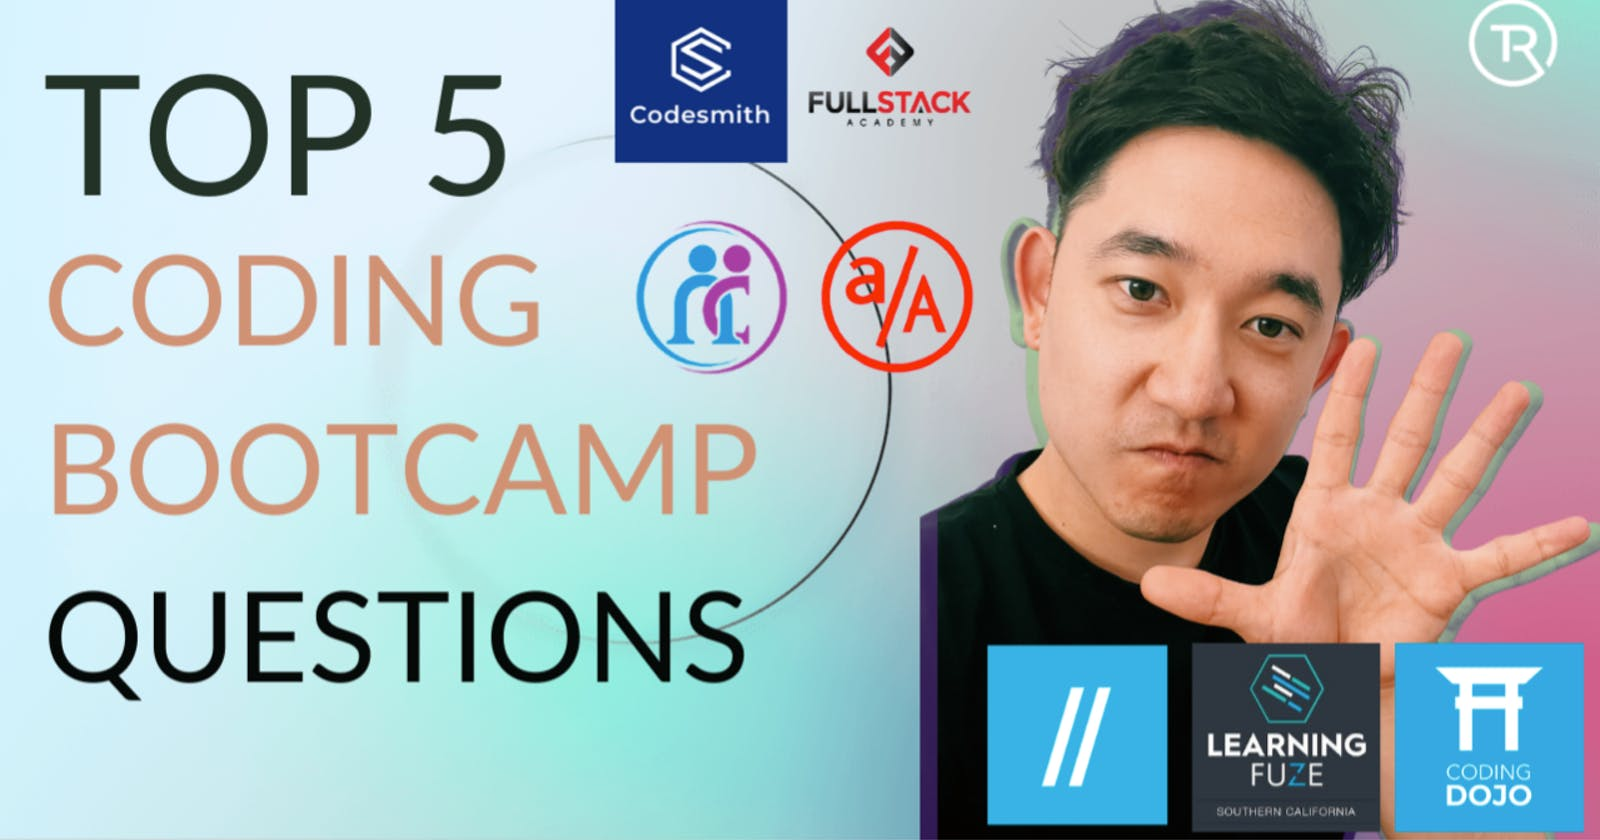 Top 5 Questions to ask before attending a Coding Bootcamp